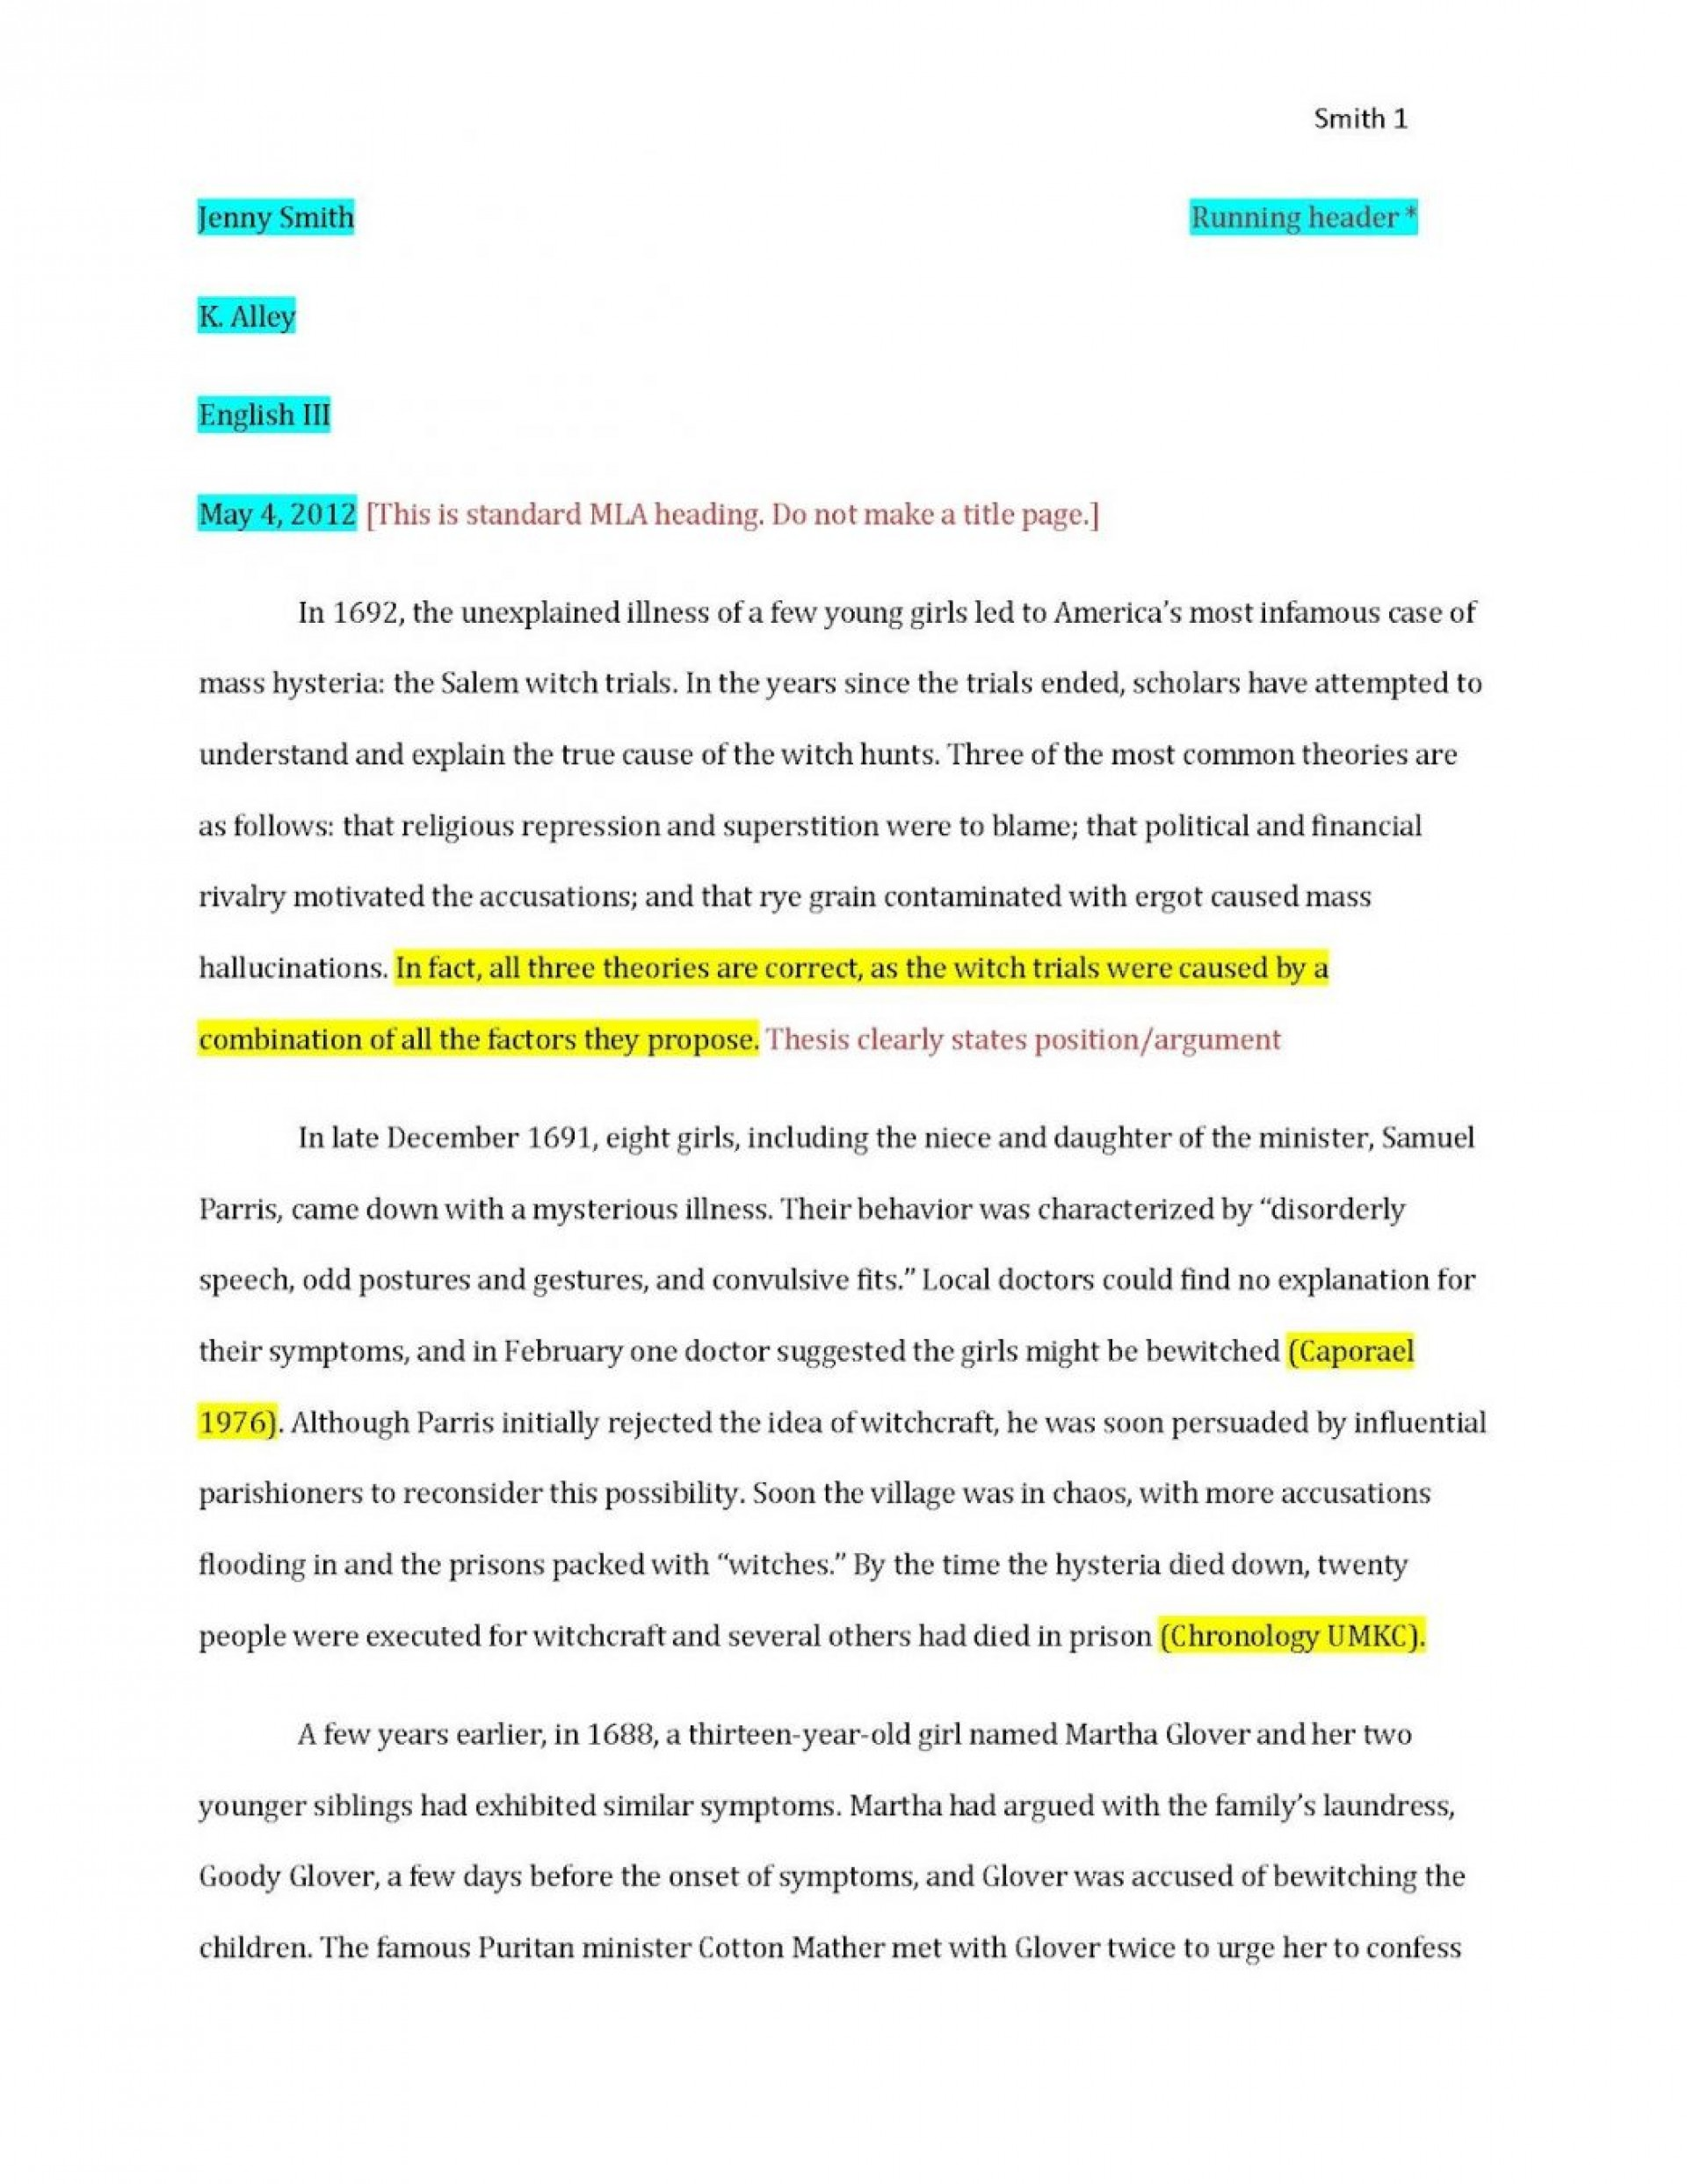 002 Mla Format Essay Generator Author Date References System Ready Set Automaticpaper P 1048x1357 Wondrous Funny Title Paper Software Download 1920